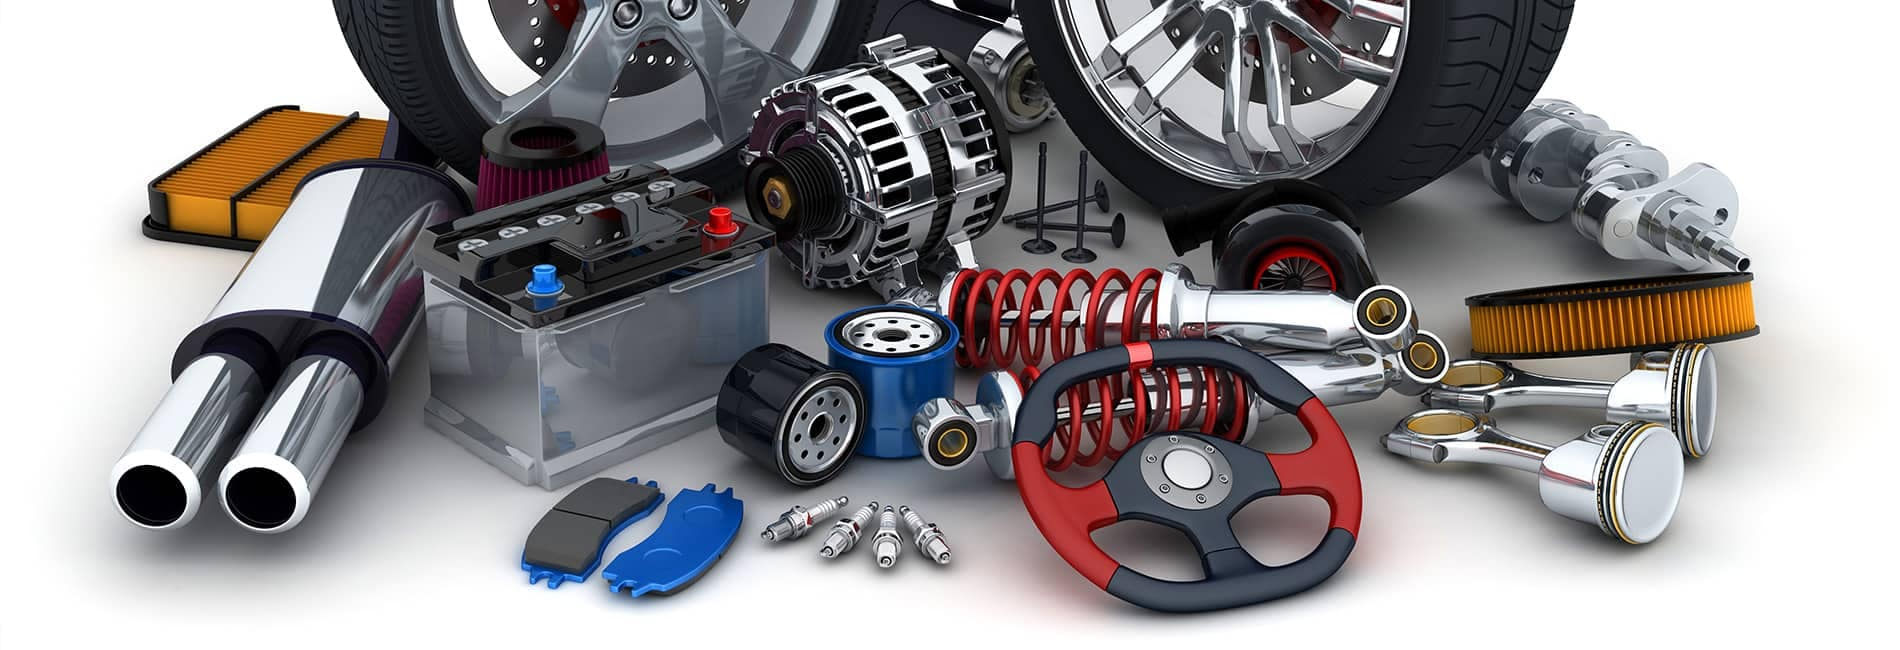 cars and tools spread over a white background